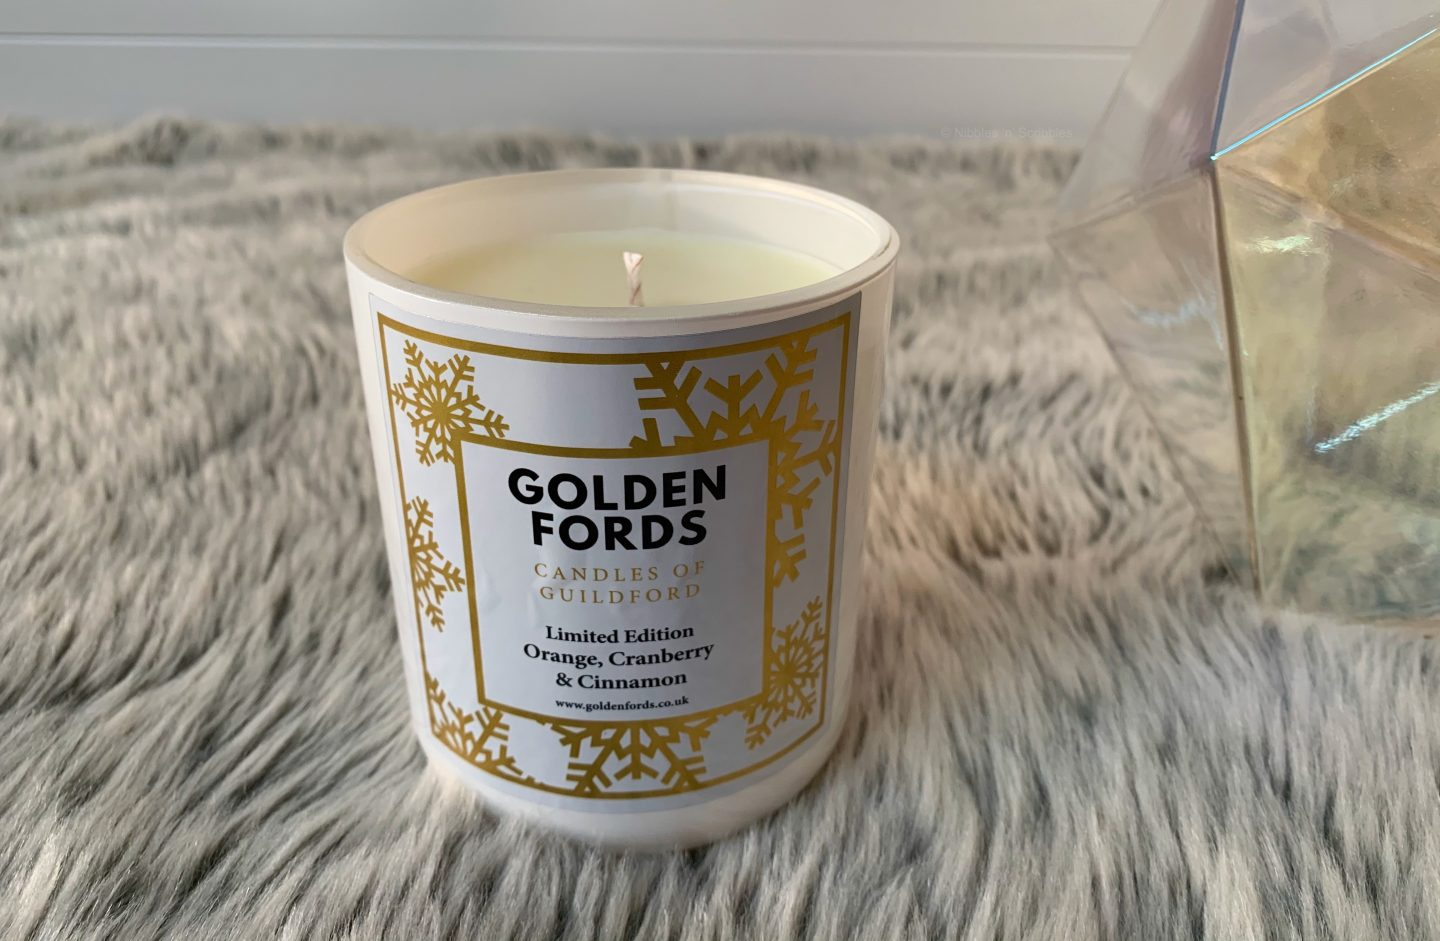 Golden Fords Candles of Guildford Orange Cranberry and Cinnamon Review